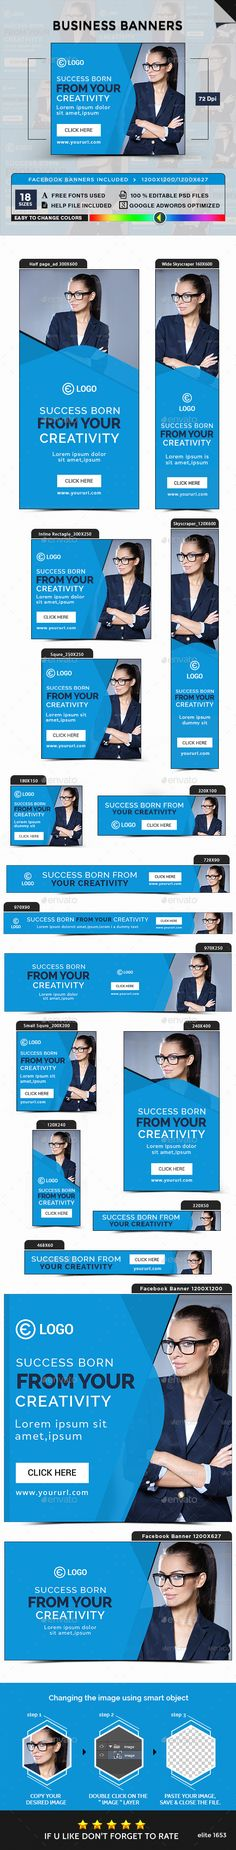 Multipurpose Banners - Banners & Ads Web Elements Download here : https://graphicriver.net/item/multipurpose-banners/17104692?s_rank=146&ref=Al-fatih